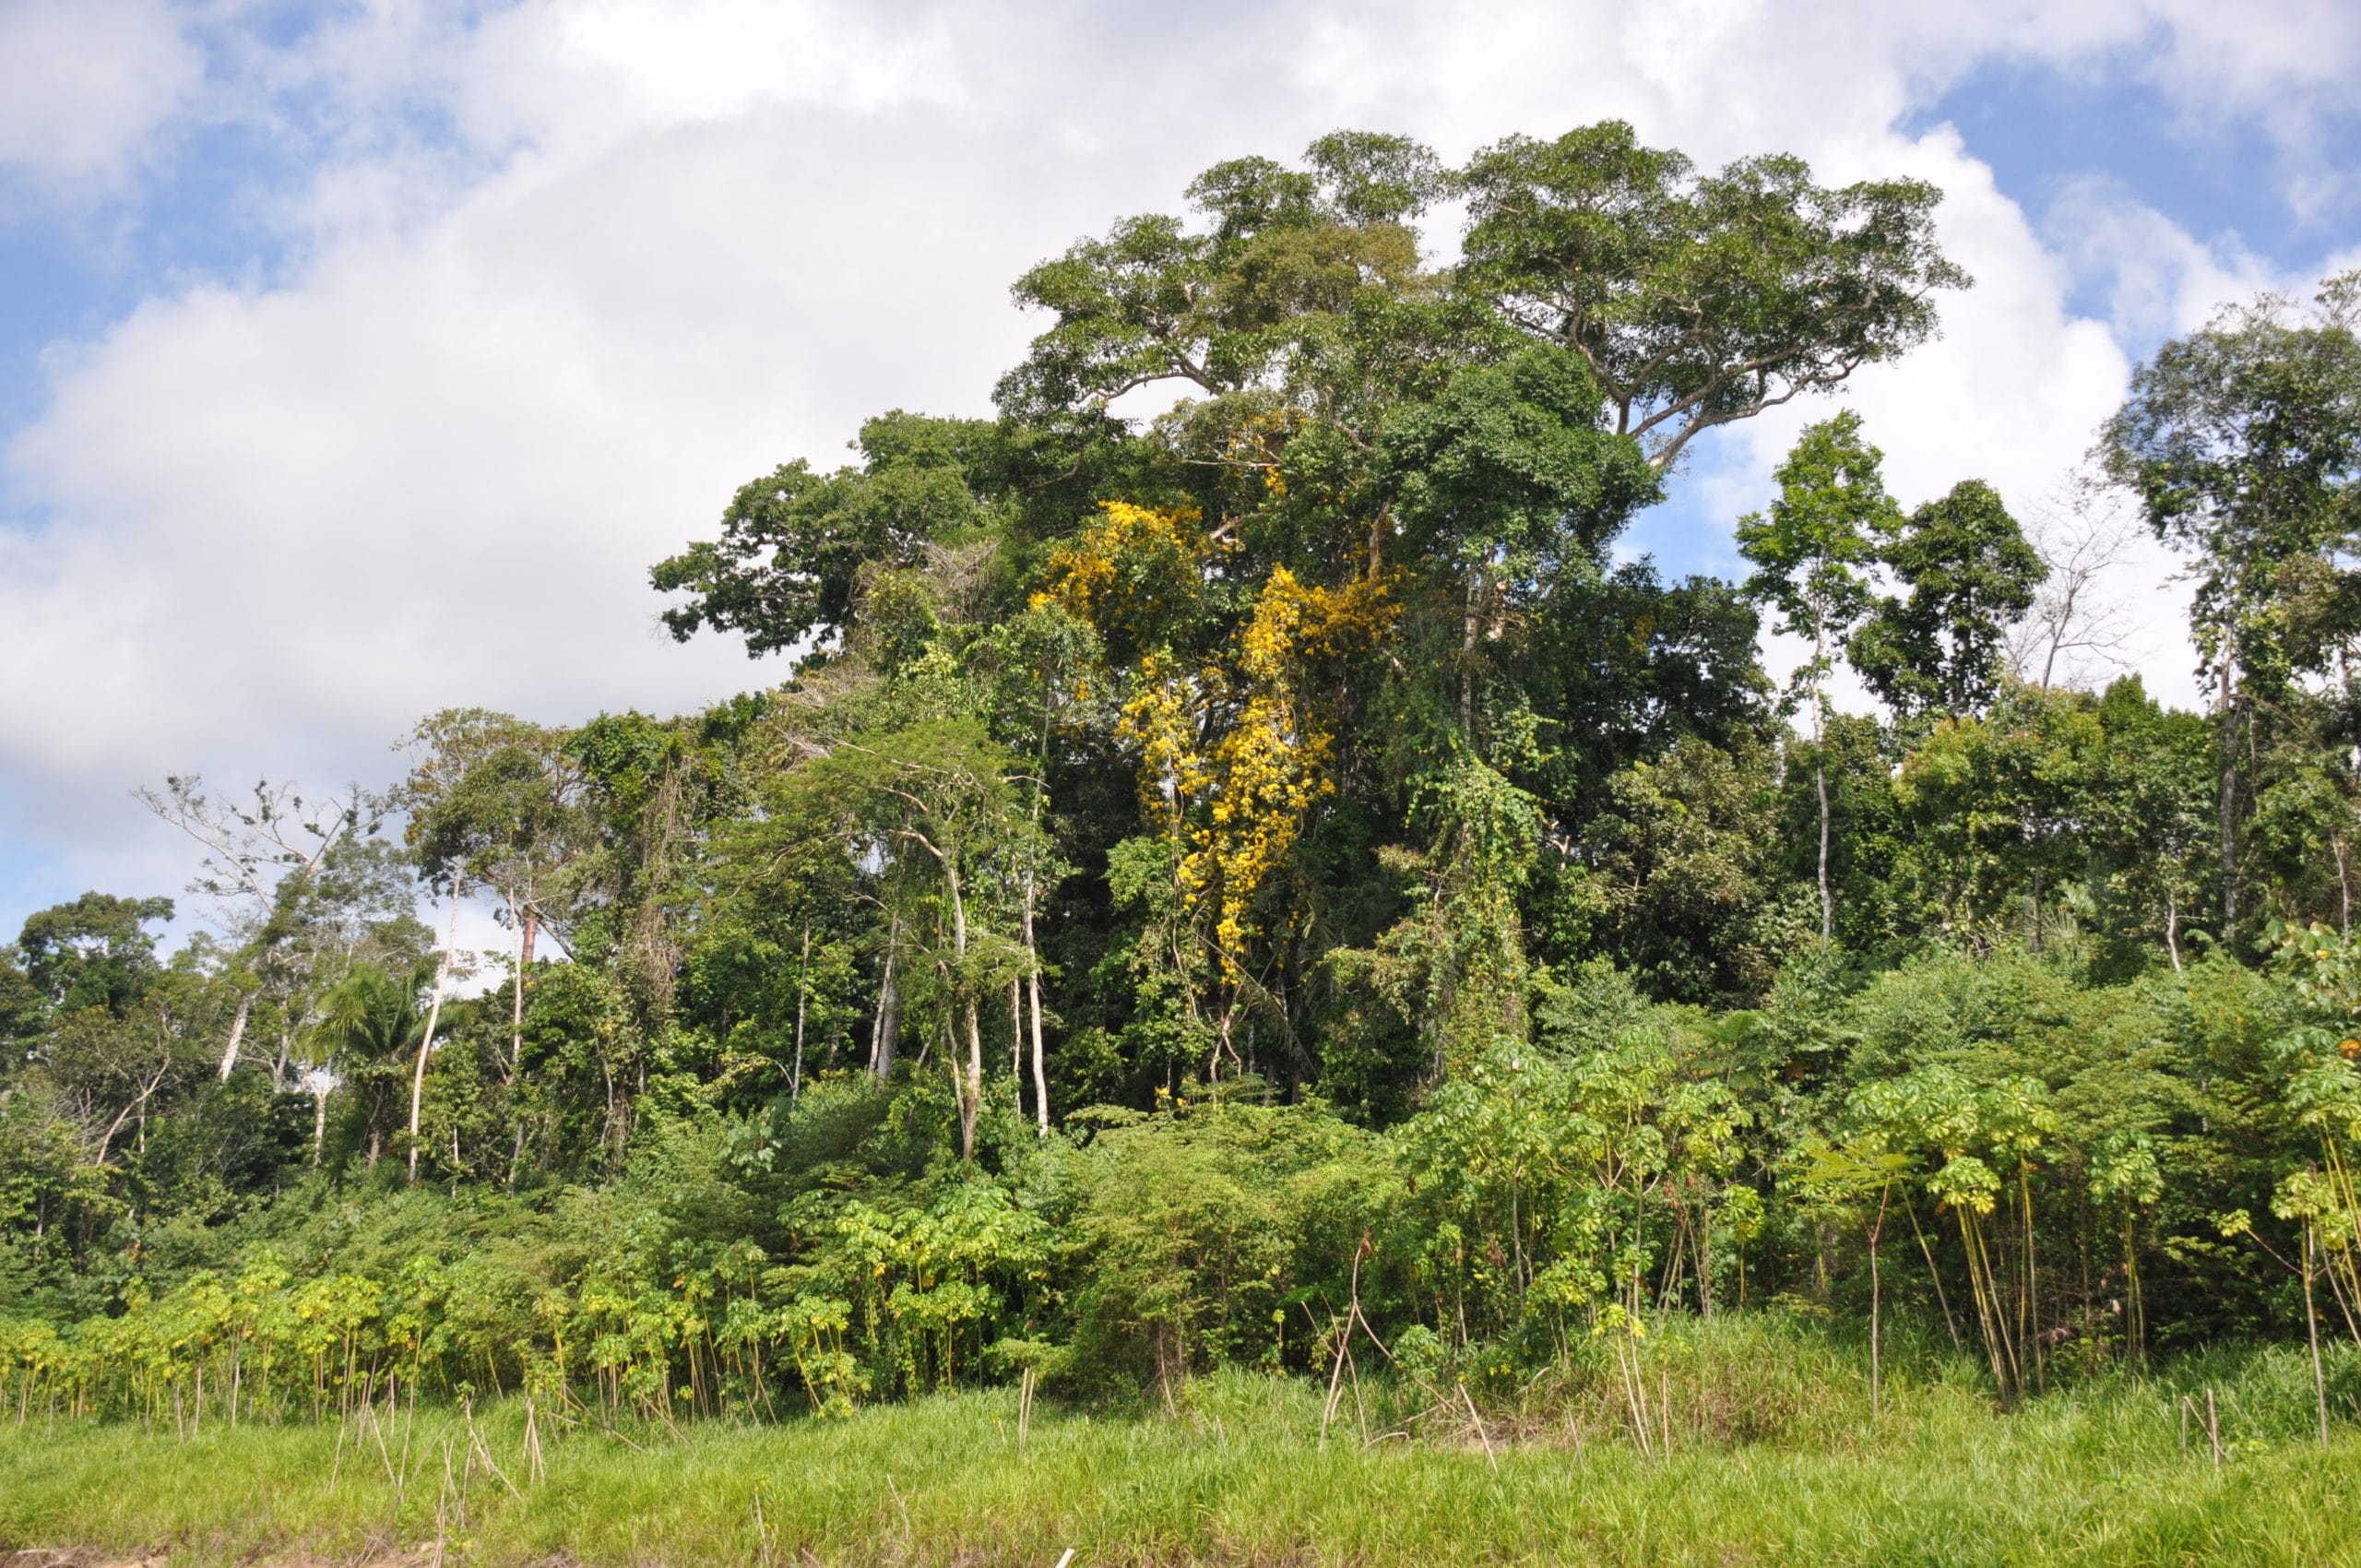 Carbonfund.org Success Story - Helping to Save the Amazonian Rainforest